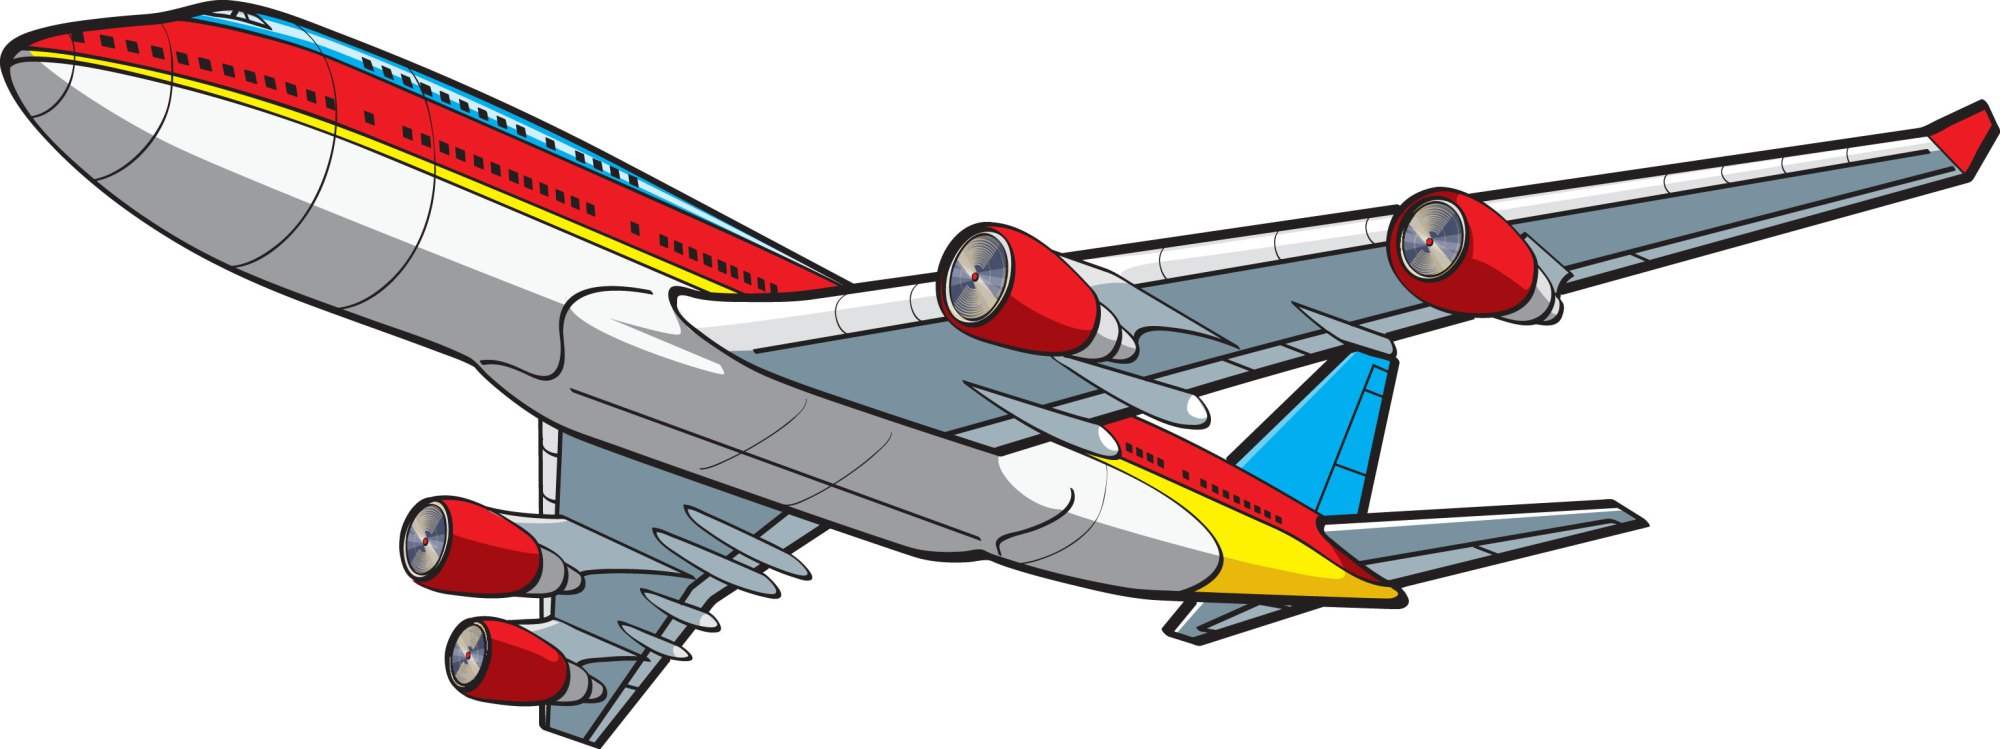 hight resolution of 3072x1151 travel clipart airplane flying